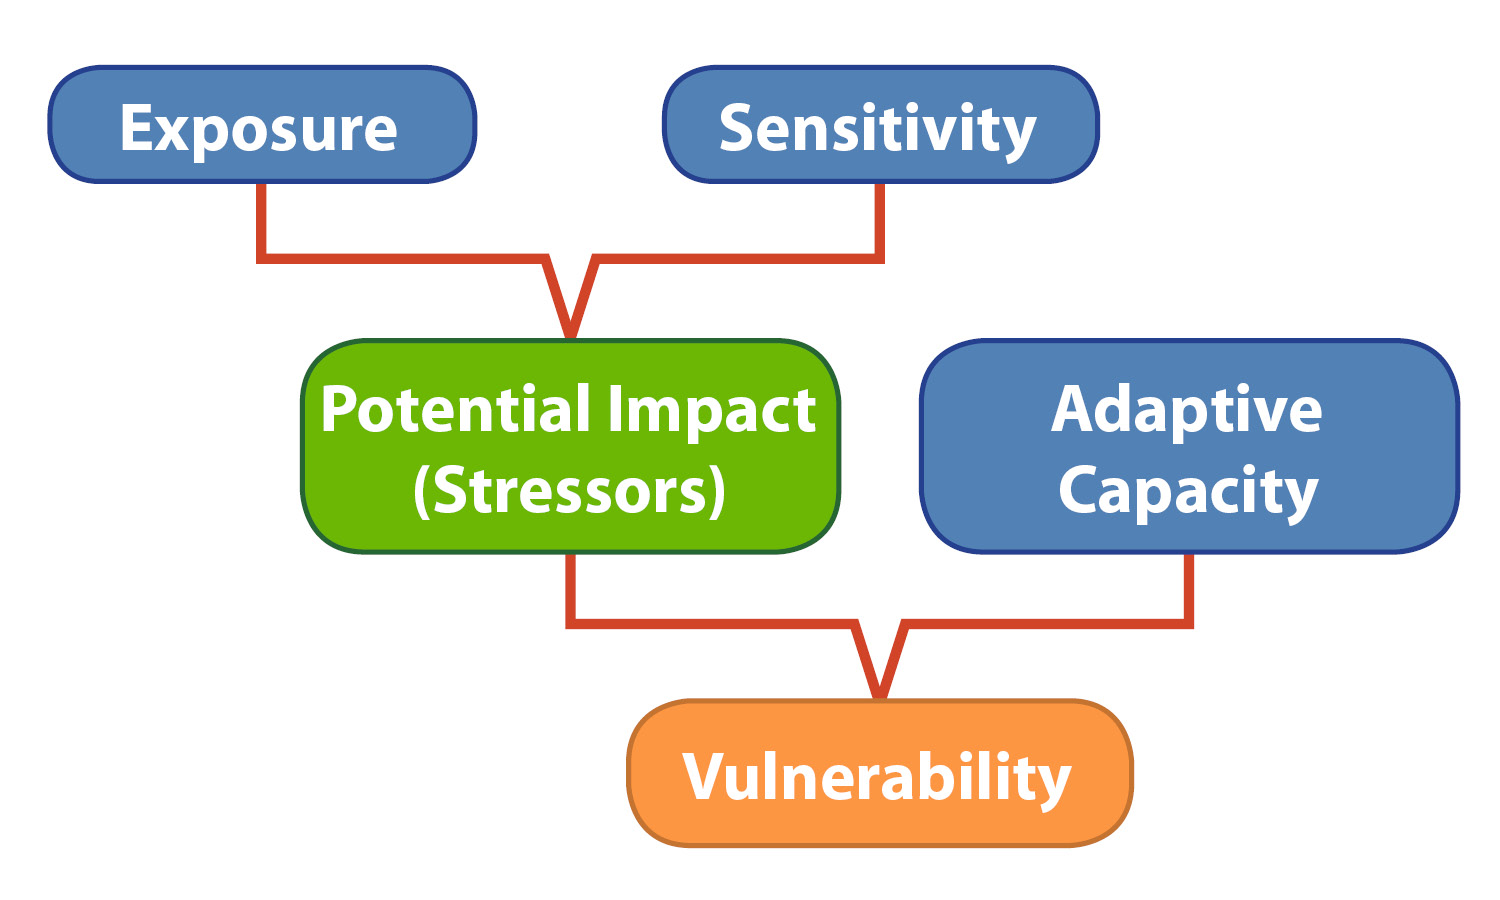 A flow chart showing the relationship between exposure, sensitivity, potential impact (stressors), adaptive capacity and vulnerability